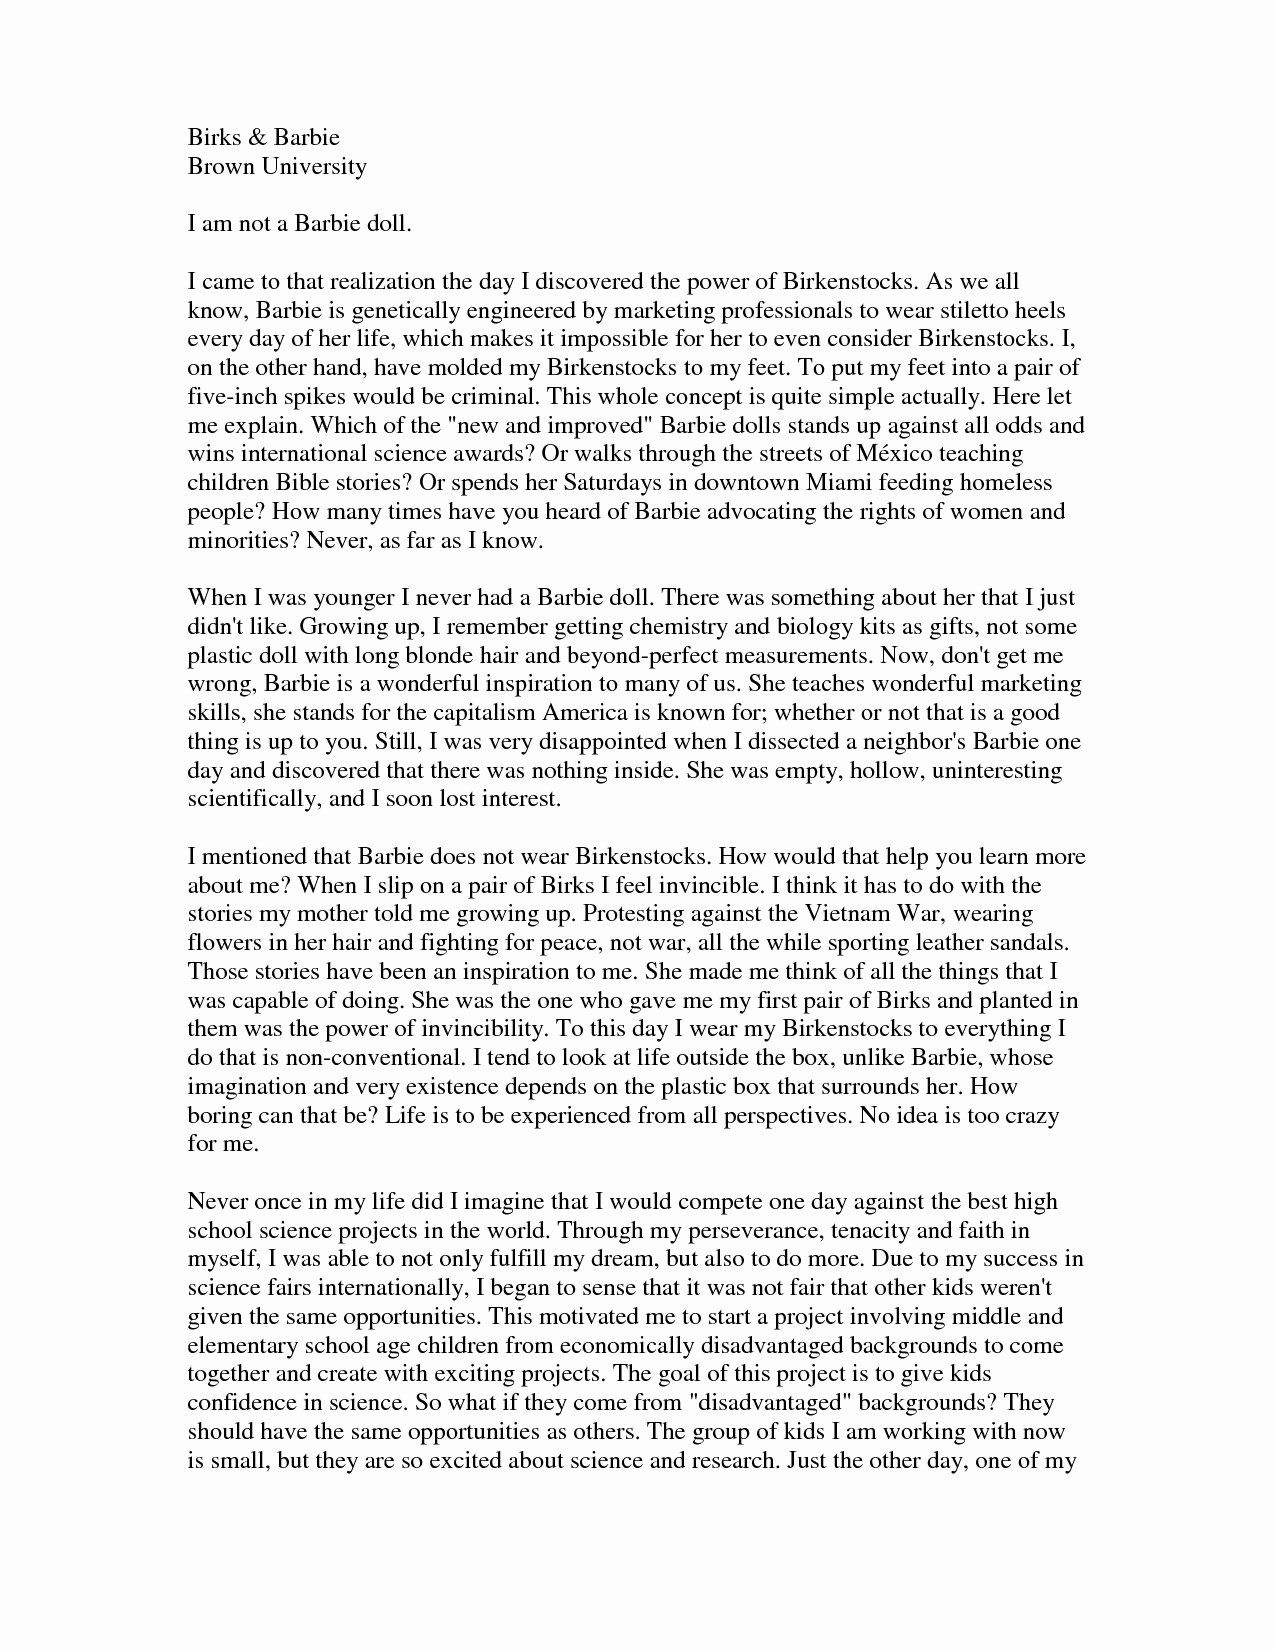 Full Size of How To Format An Essay For College Application